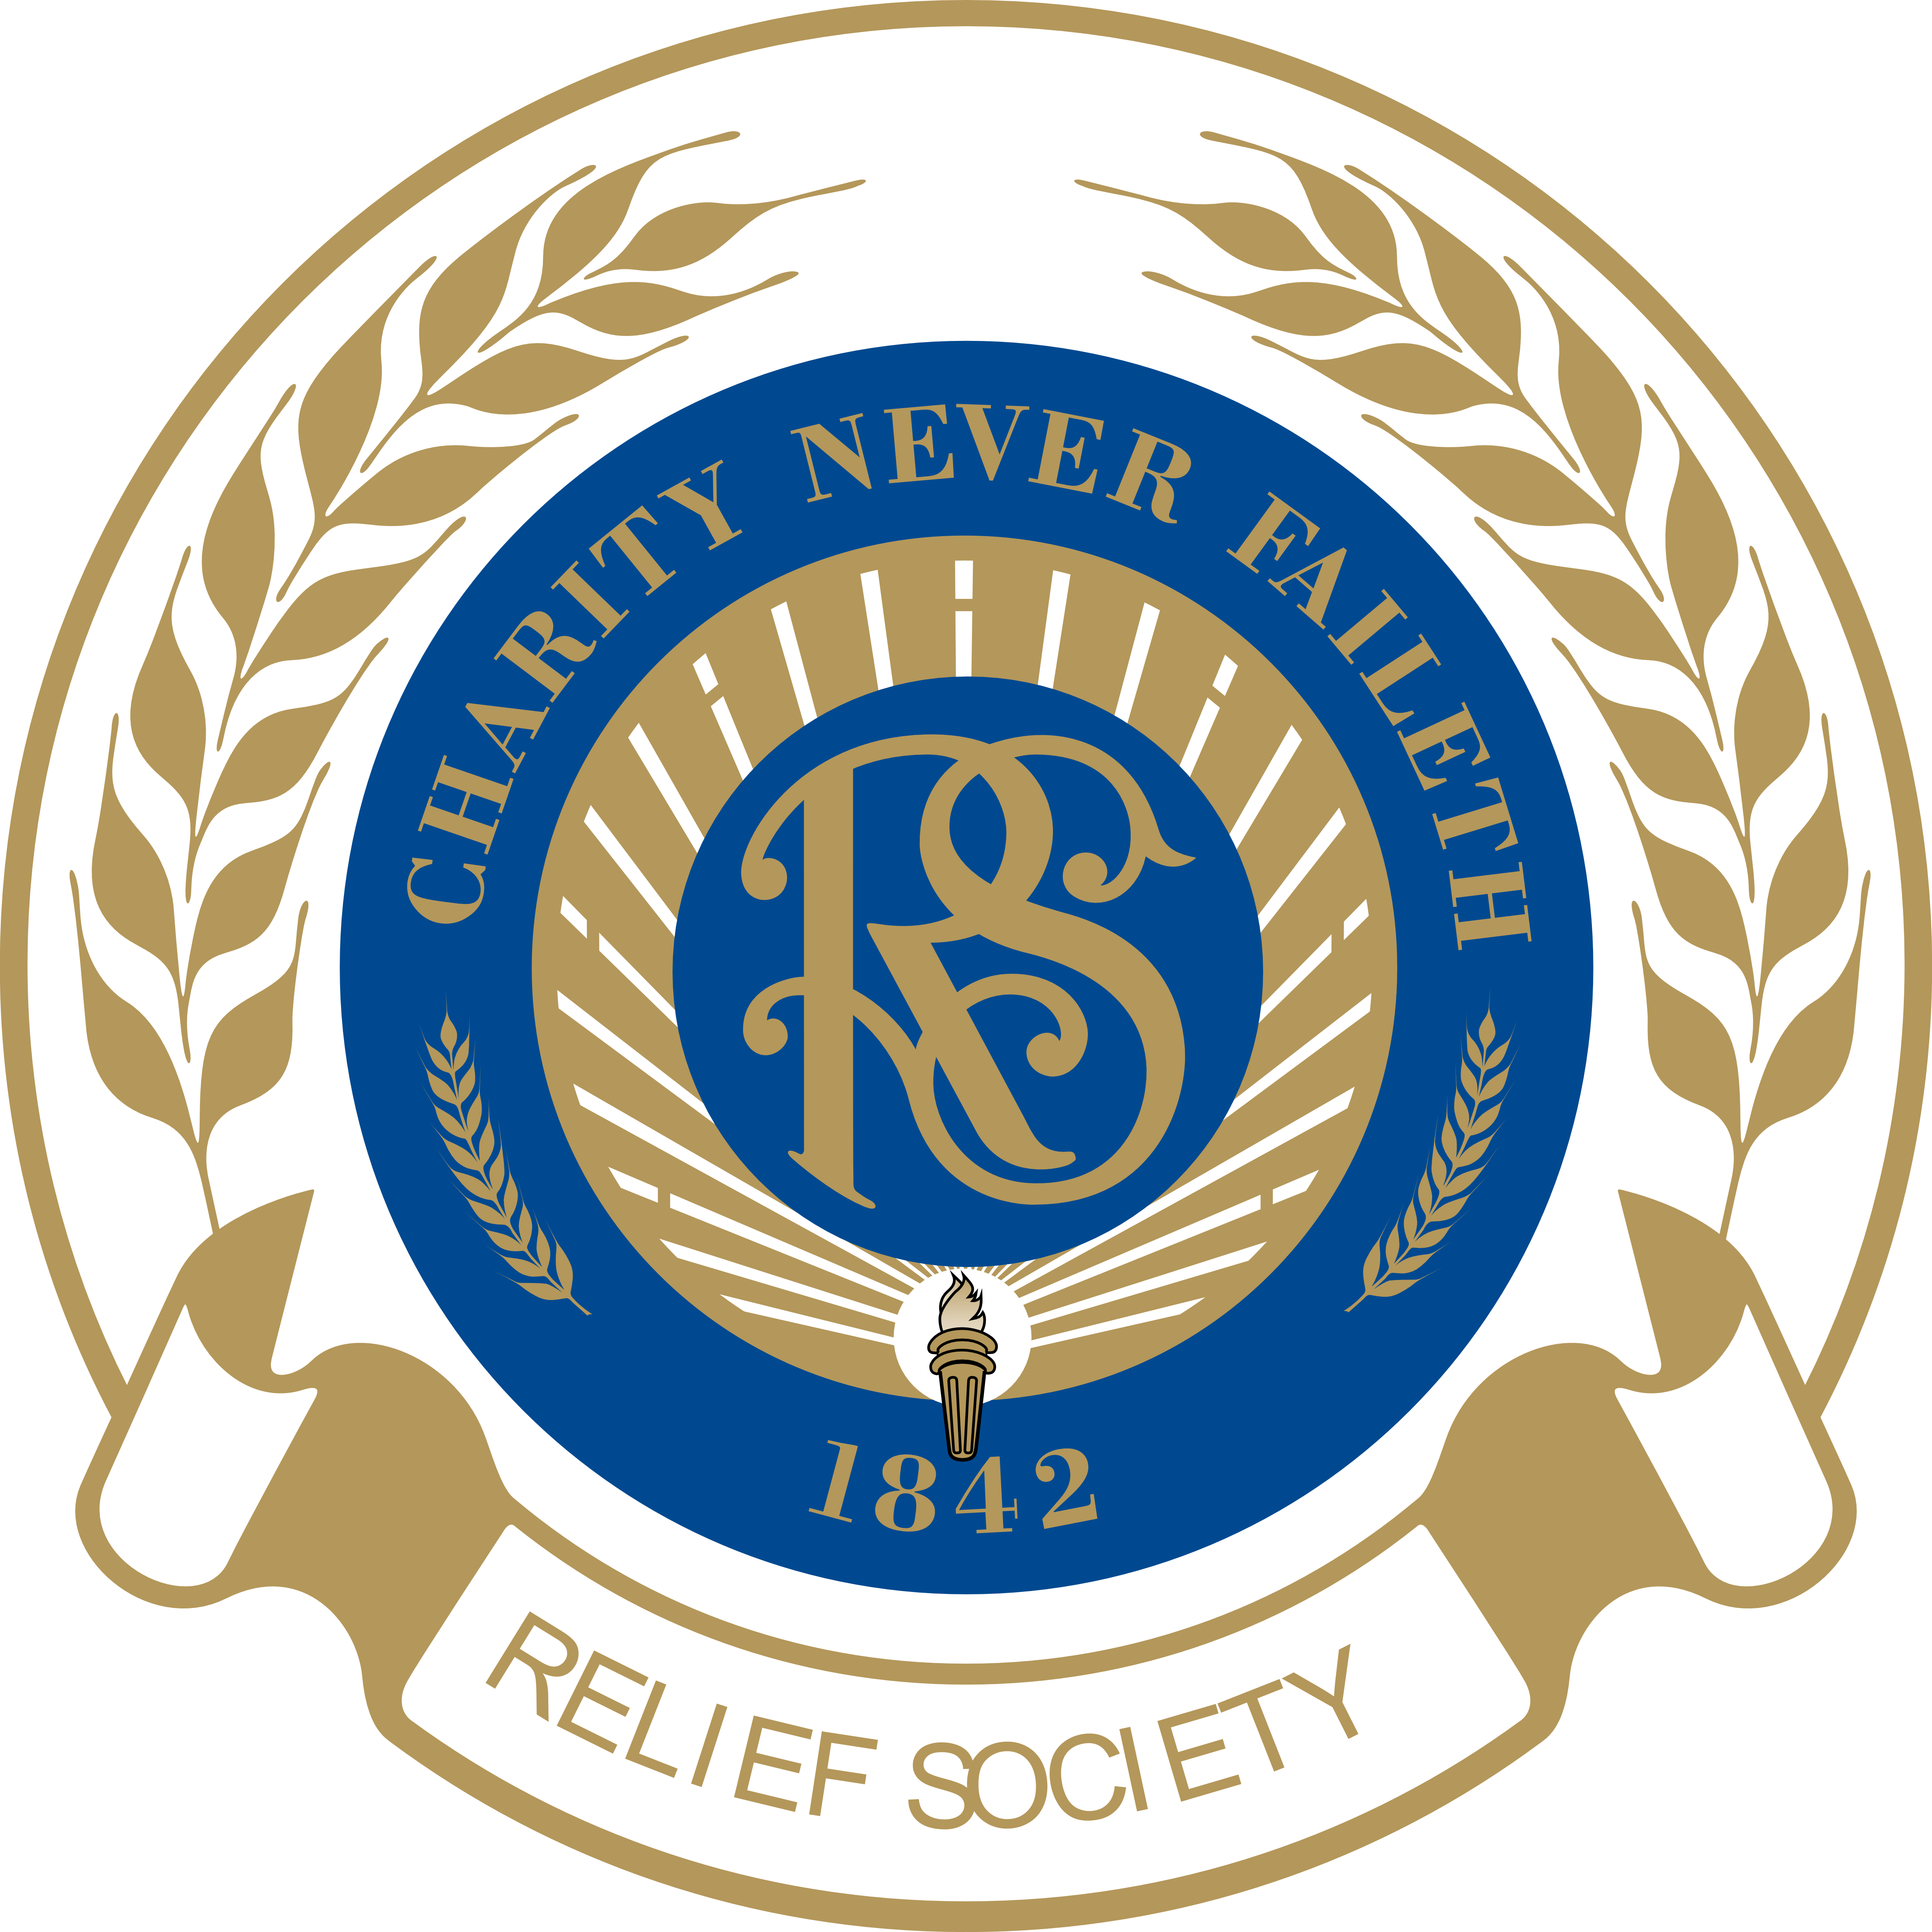 Logos . R clipart relief society